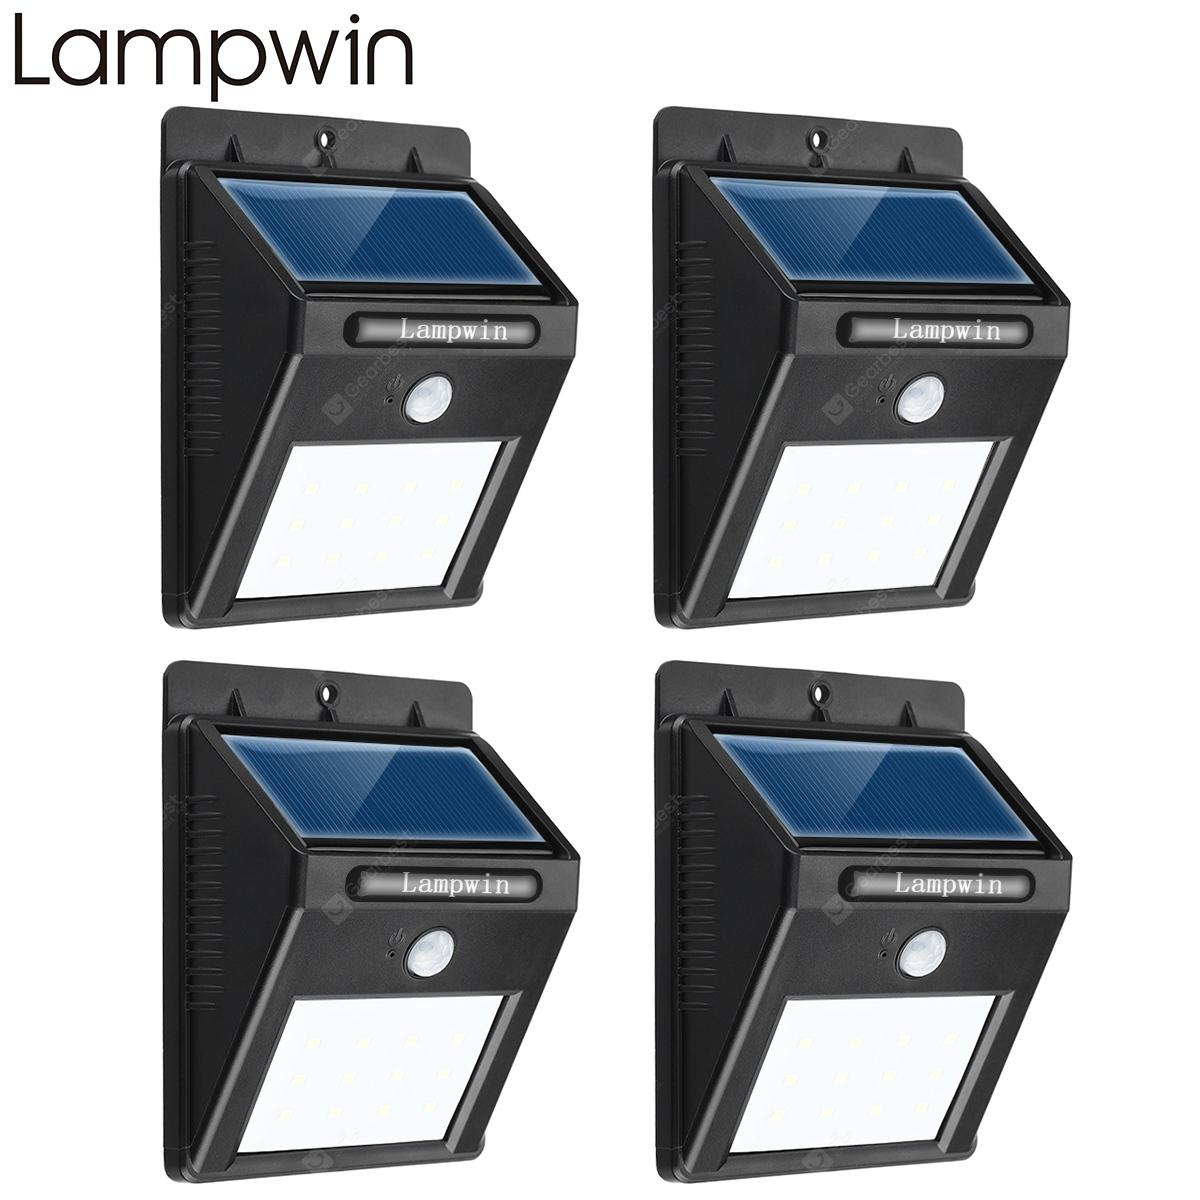 Lampwin waterproof outdoor motion activated security lighting 12 led lampwin waterproof outdoor motion activated security lighting 12 led bright solar powered light for patio aloadofball Gallery